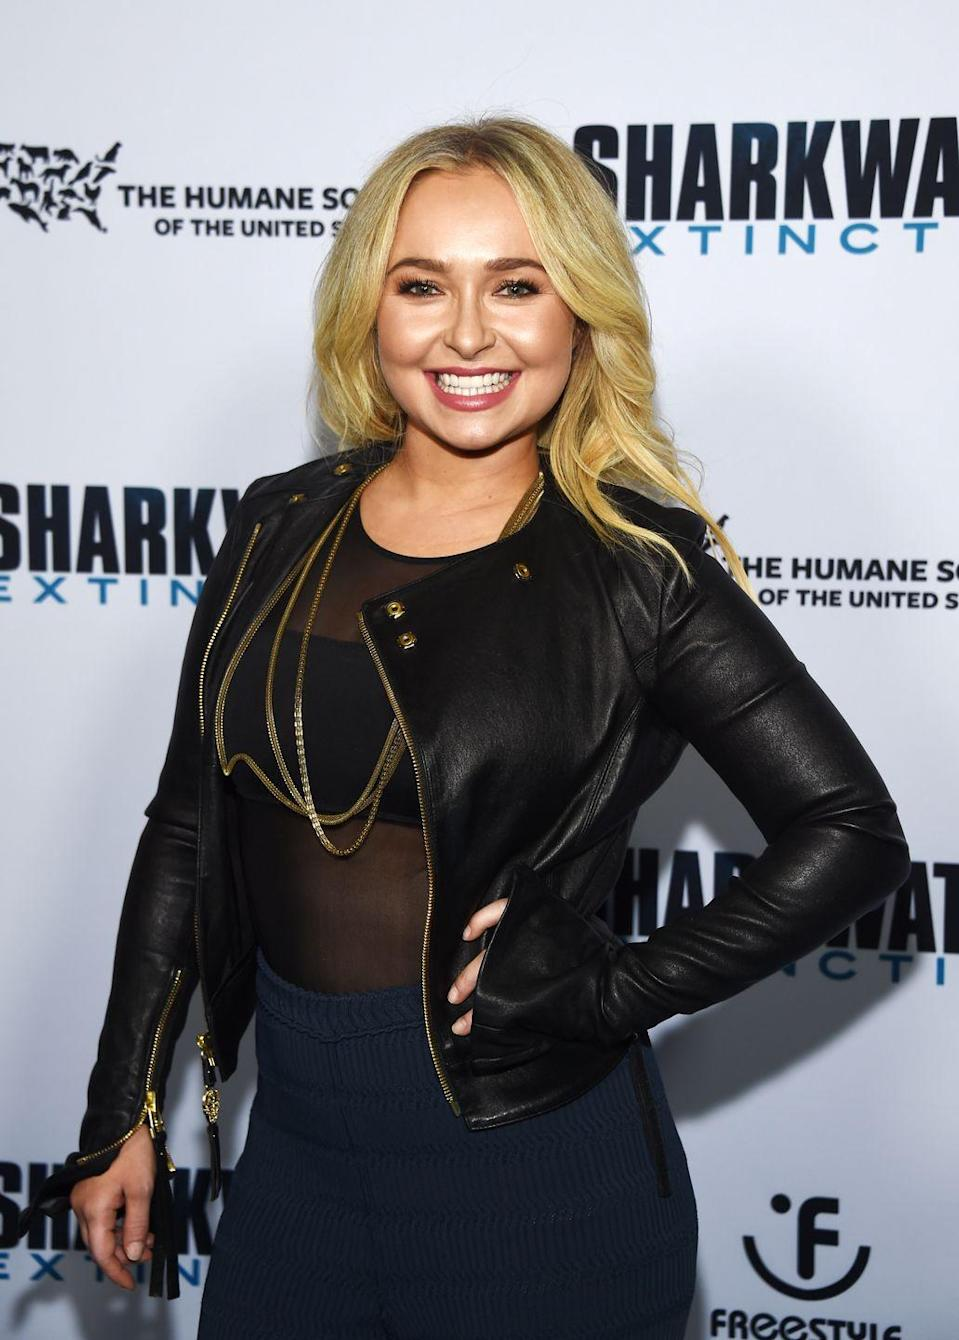 <p>Since her big break on <em>One Life to Live </em>when she was just 5, Hayden has had a long career in movies and on TV, in hits like <em>Heroes </em>and <em>Nashville</em>. She's also the mom to a four-year-old daughter.</p>